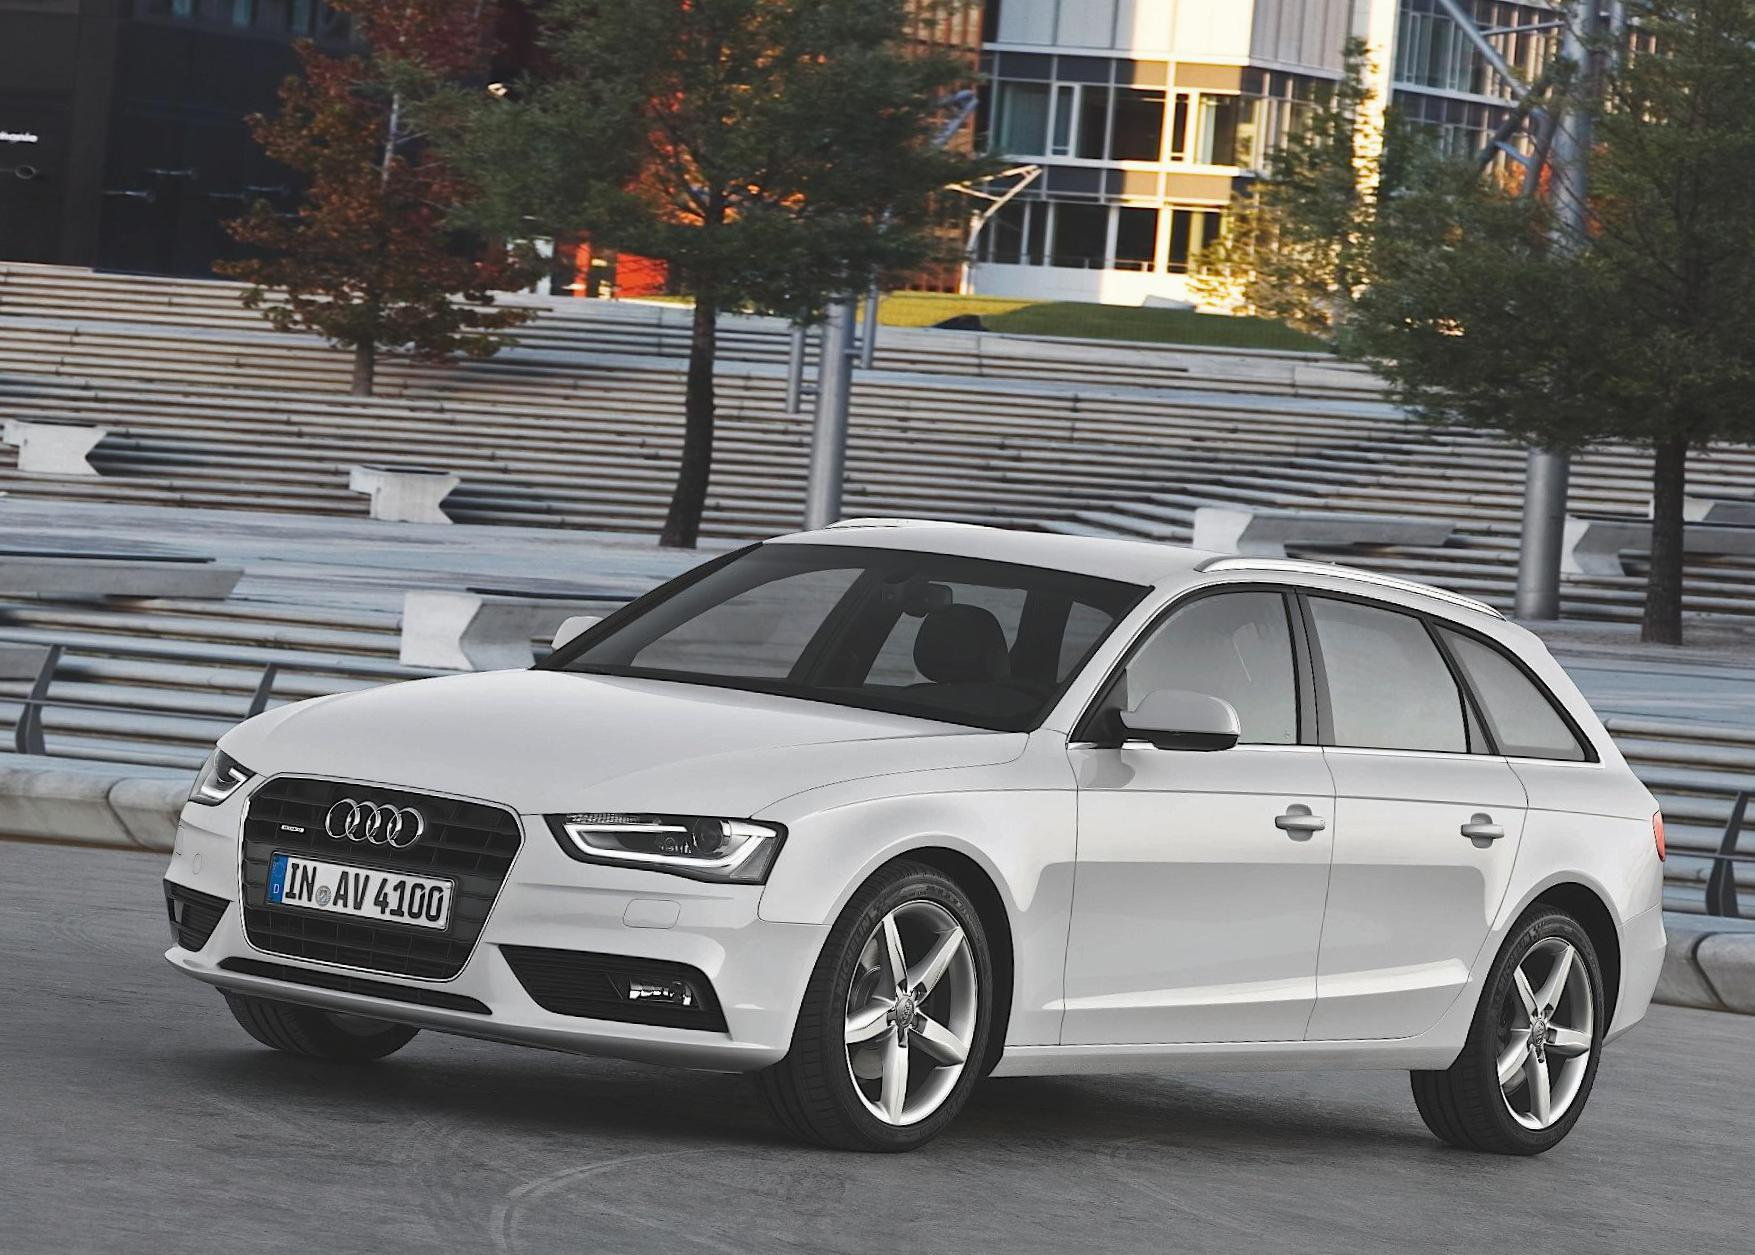 Audi A4 Avant approved 2012